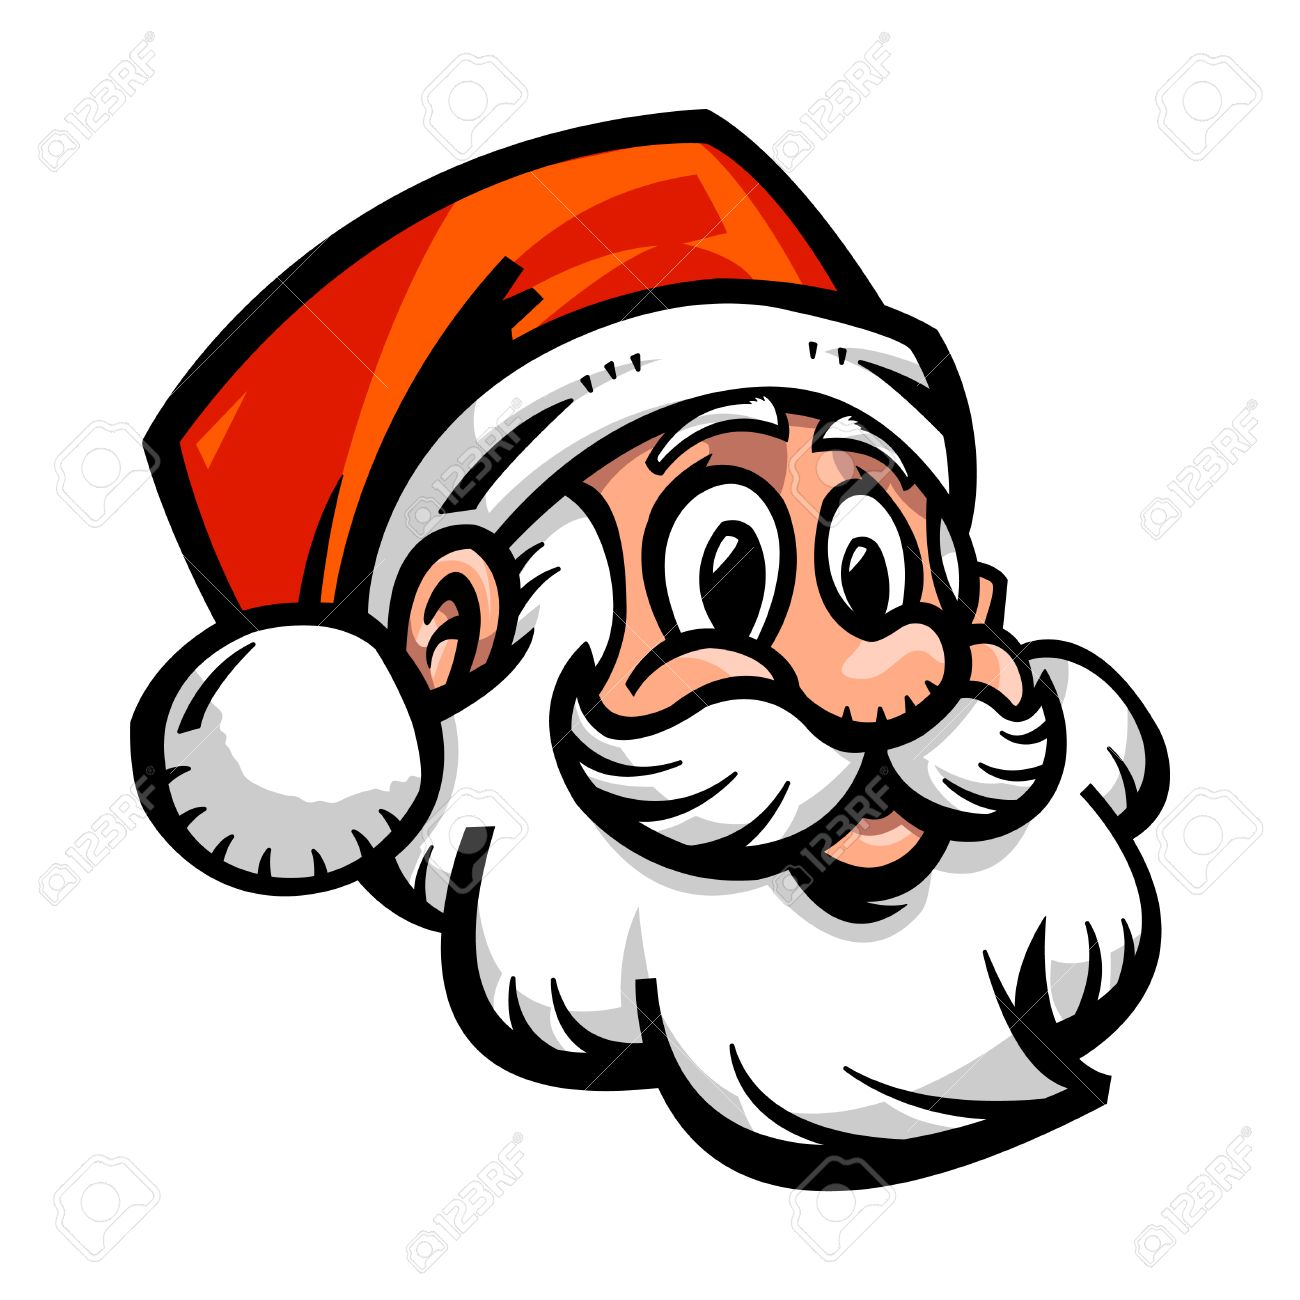 1300x1300 Santa Claus Cartoon Royalty Free Cliparts, Vectors, And Stock